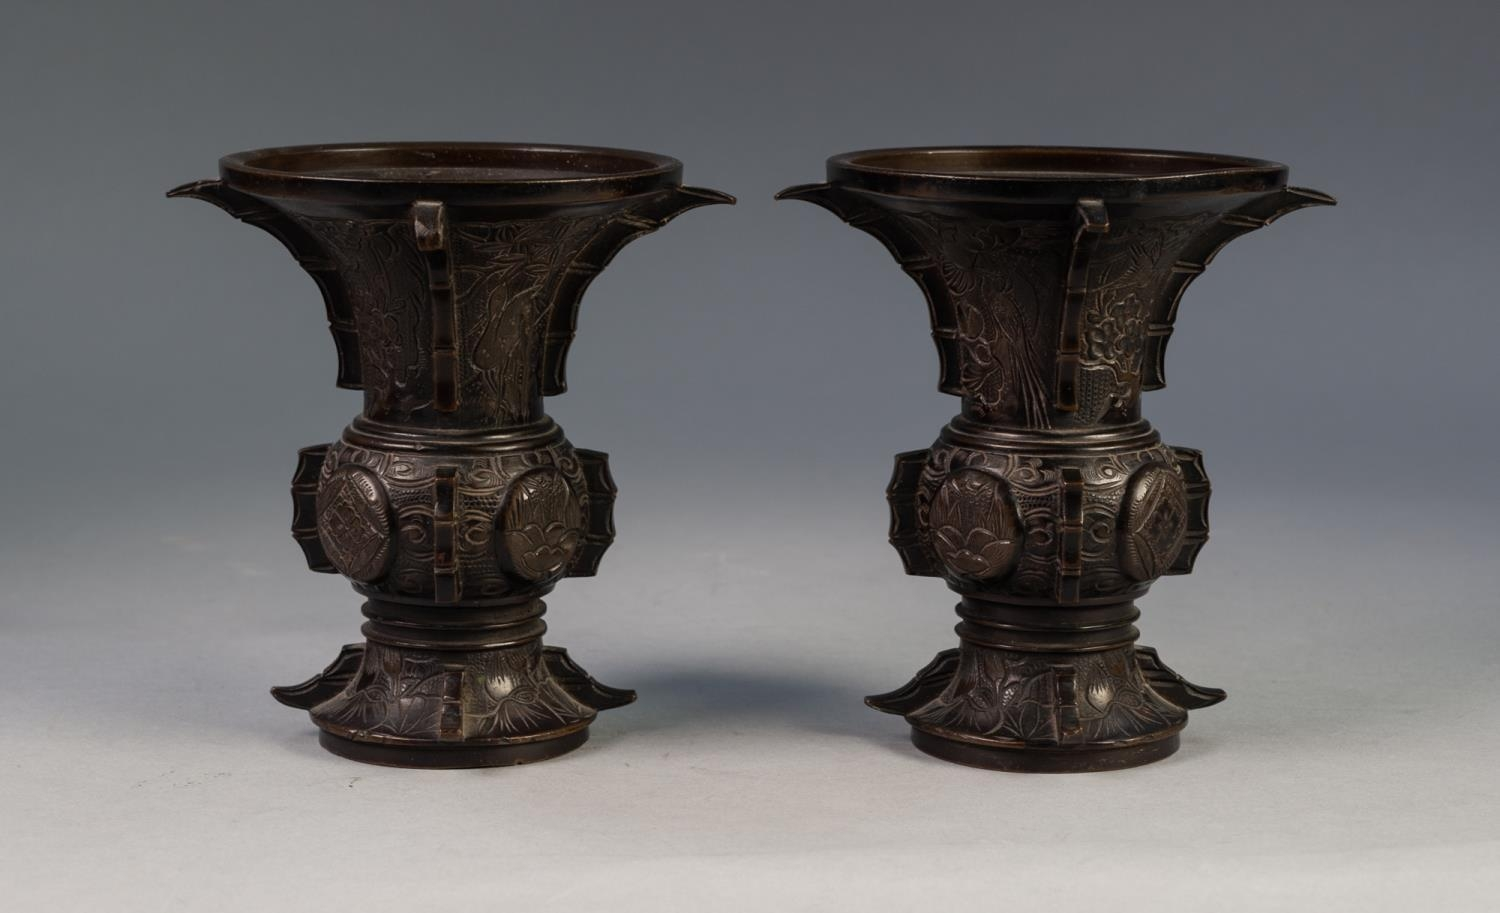 PAIR OF JAPANESE LATE MEIJI PERIOD BRONZE VASES, each of flared form, engraved with panels - Image 2 of 4